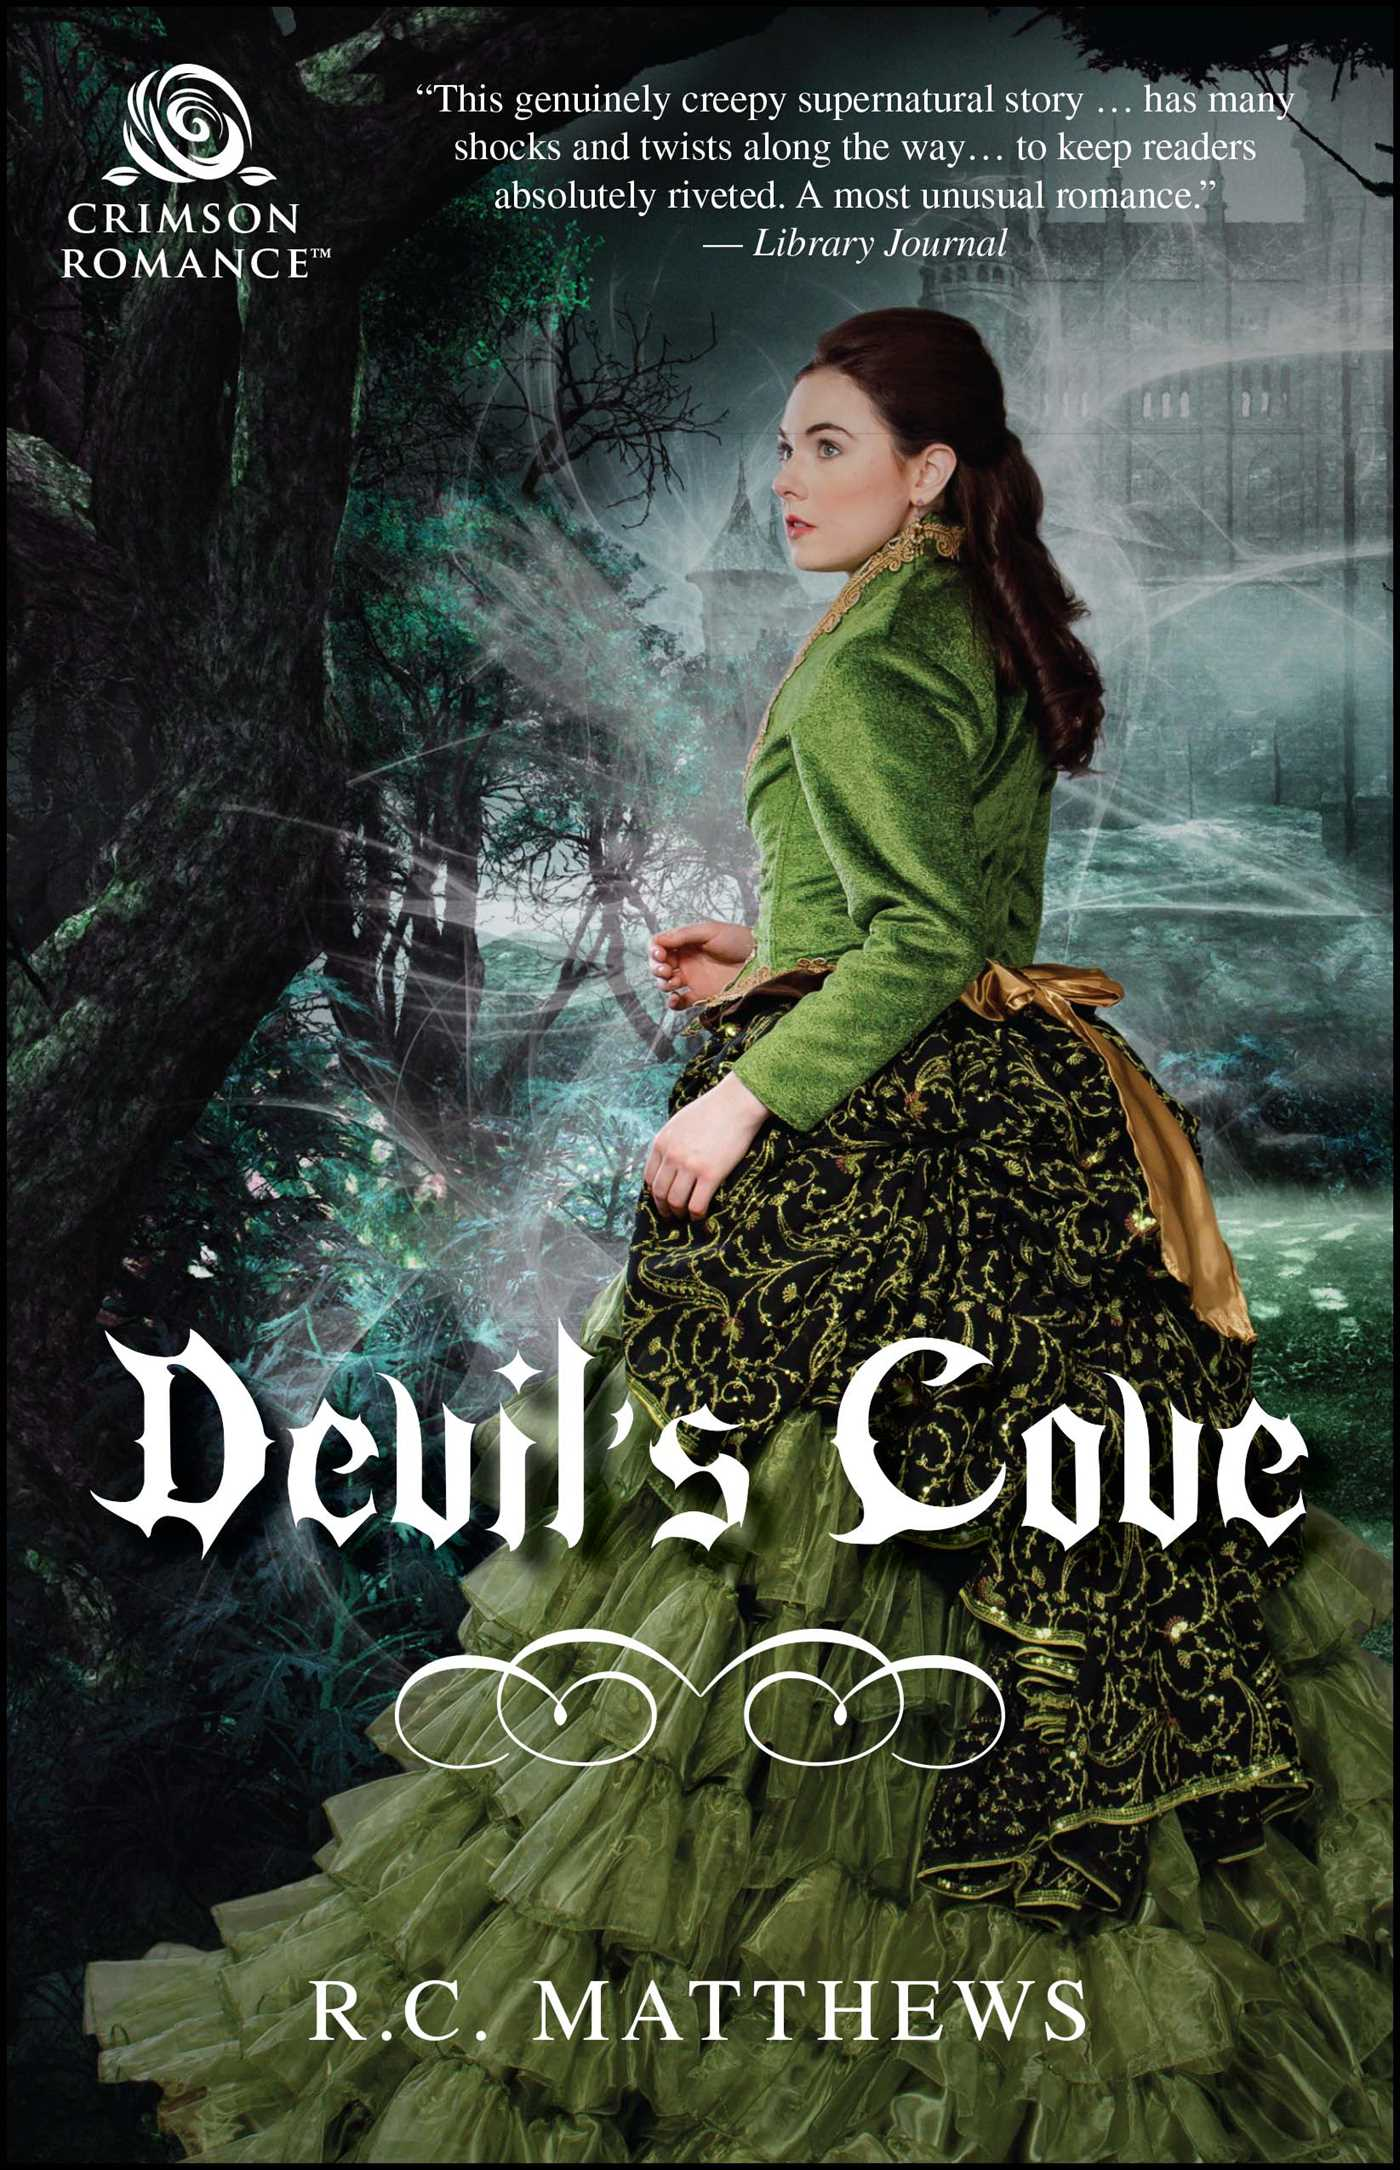 Devils cove 9781507201251 hr